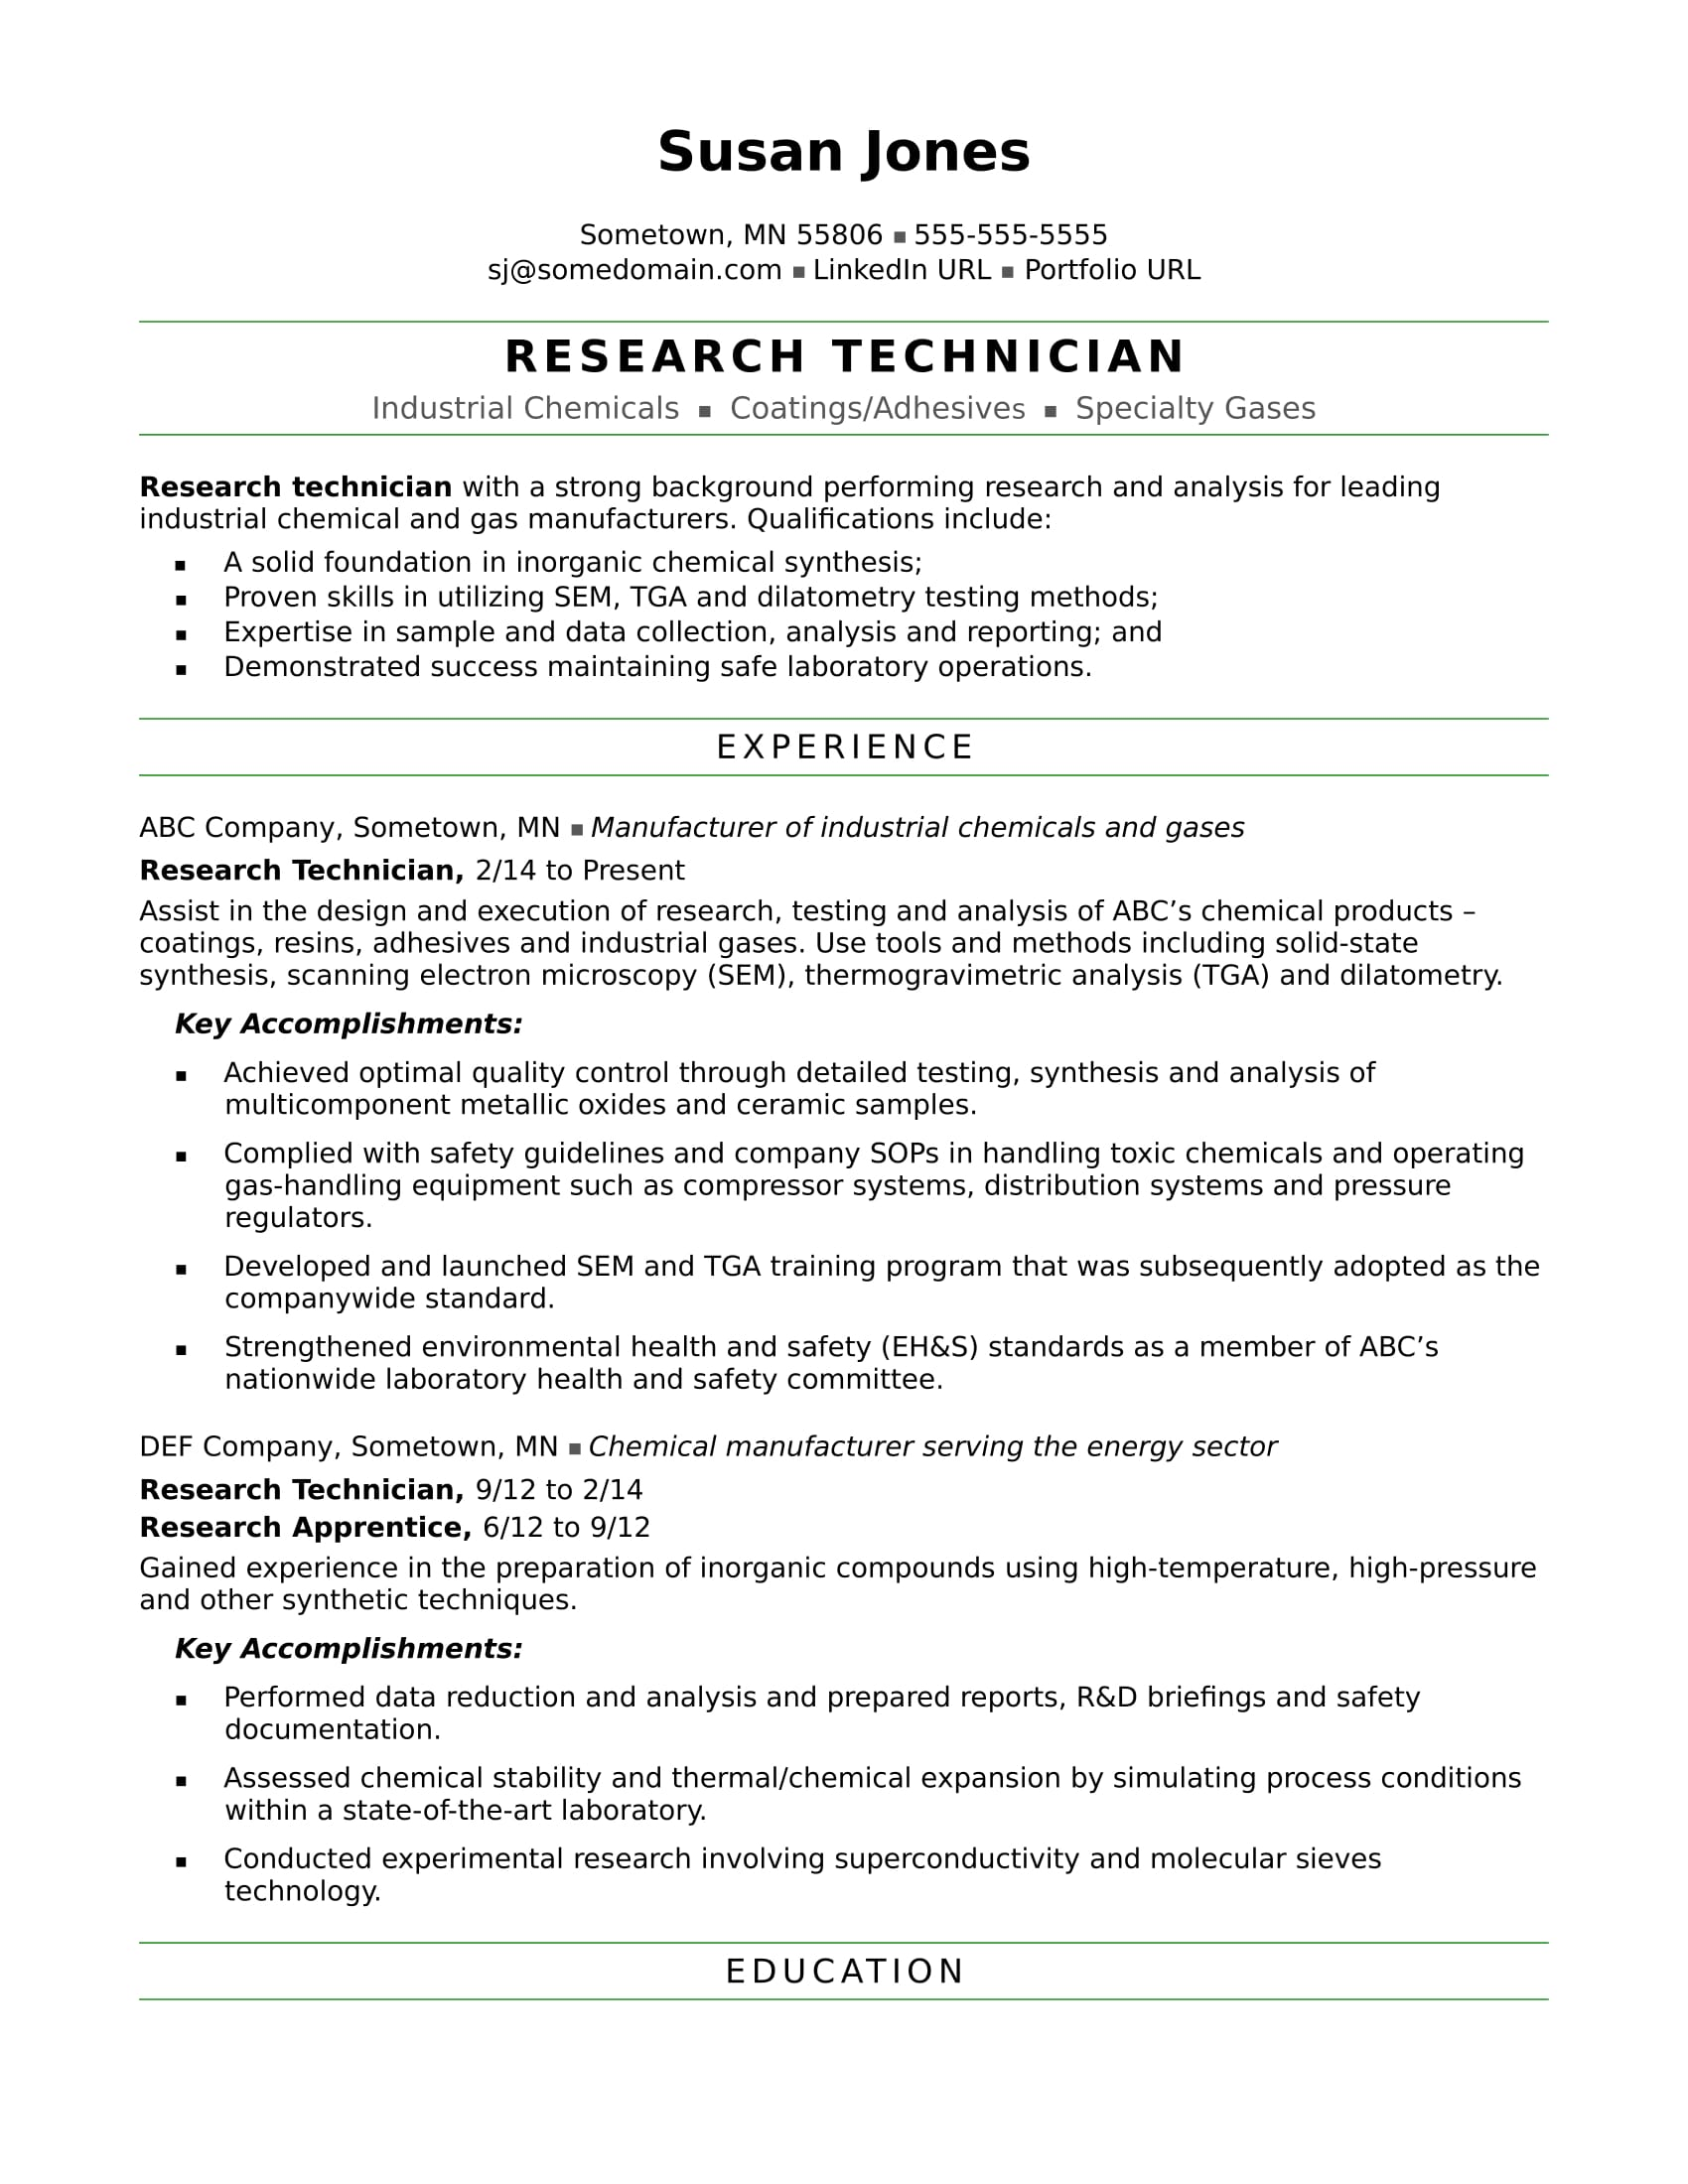 sample resume for a research technician - Sample Resume With Research Experience